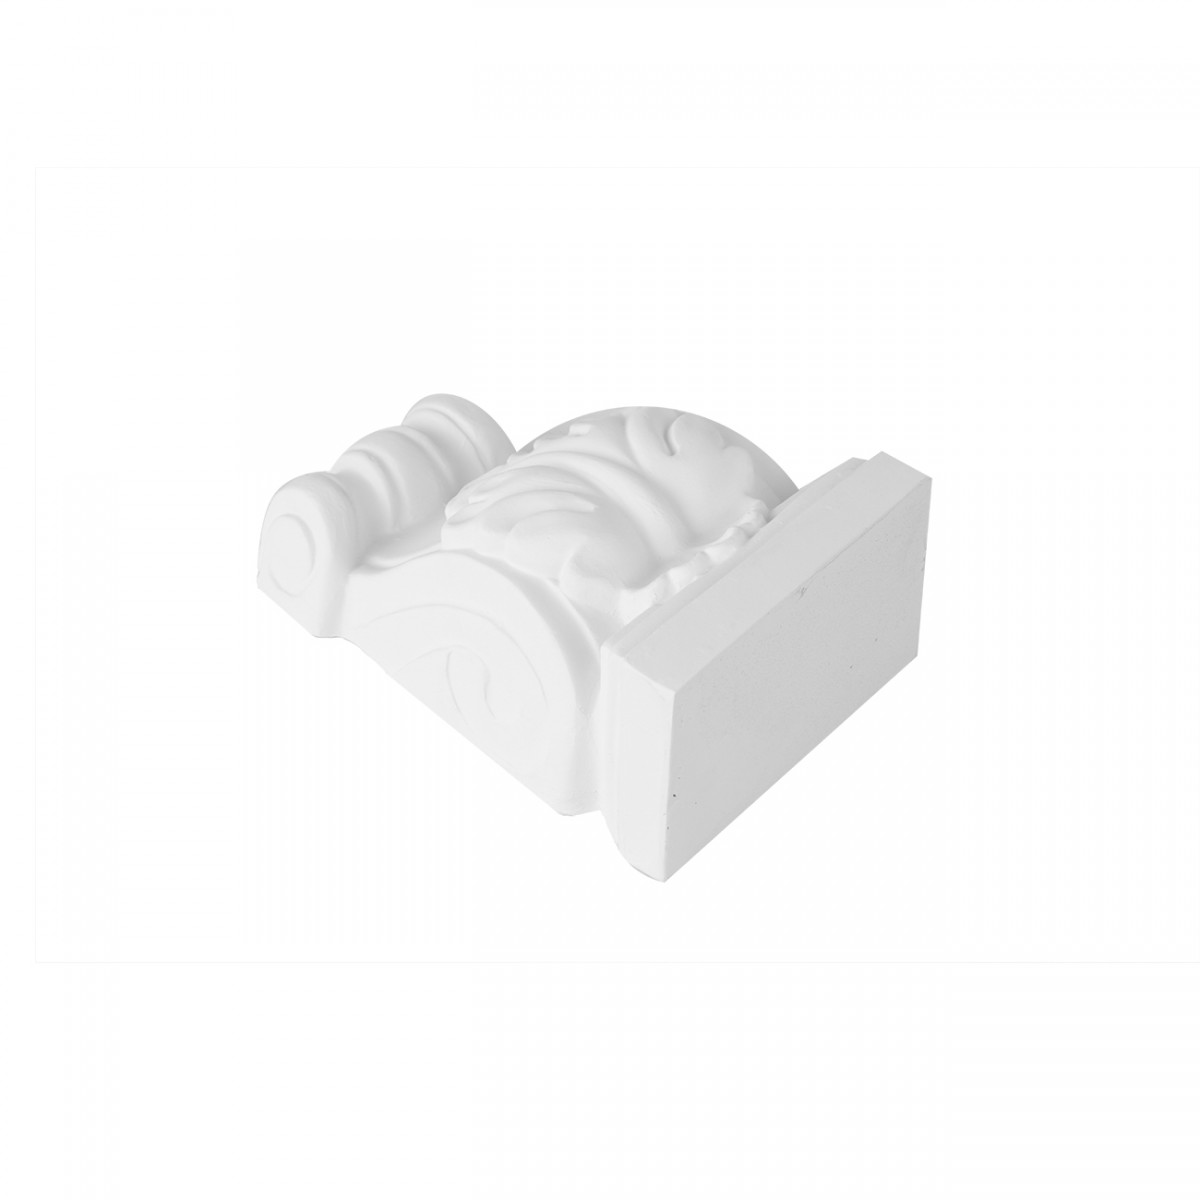 Vintage White Urethane Wall Fireplace Corbel Set of 2 Corbel Corbels Urethane Corbel